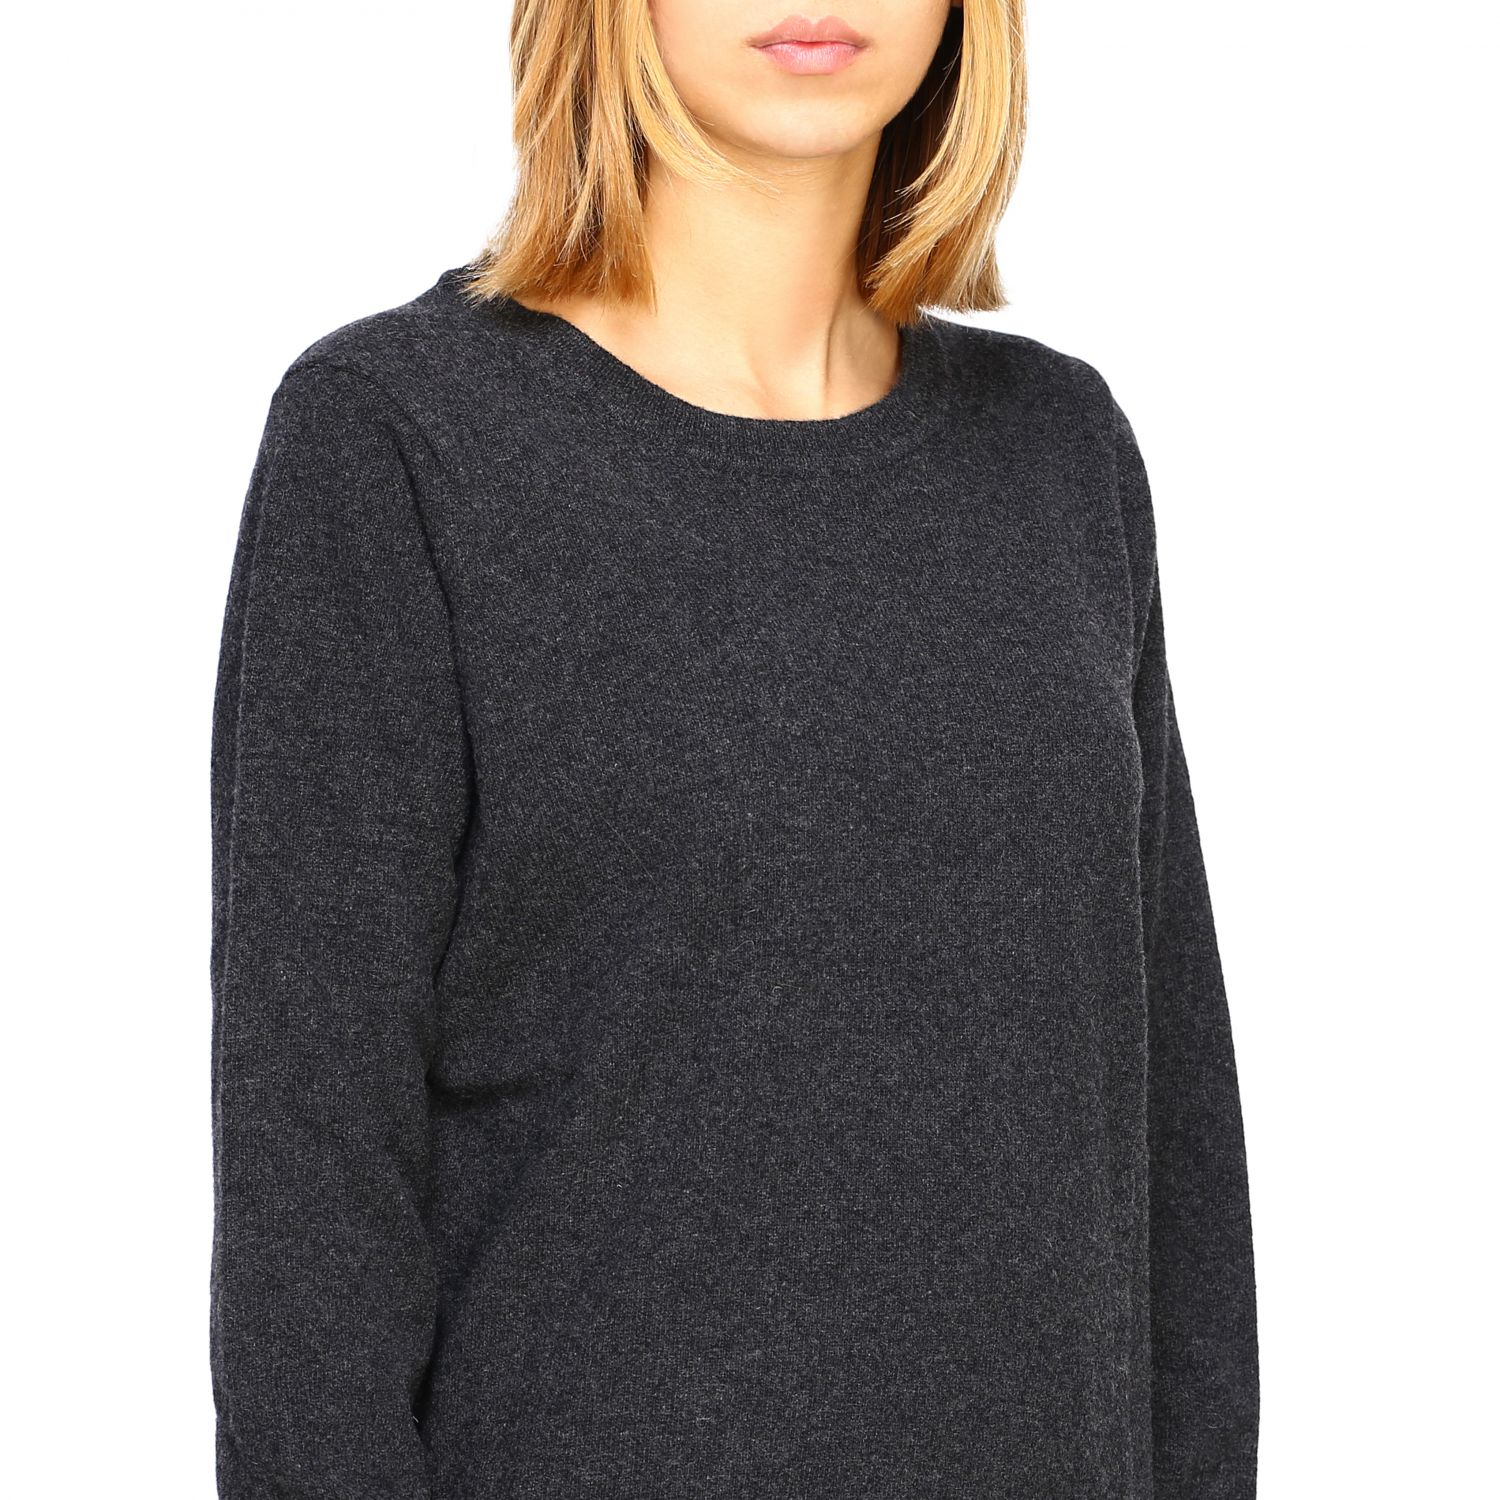 Jumper women Re_branded charcoal 5